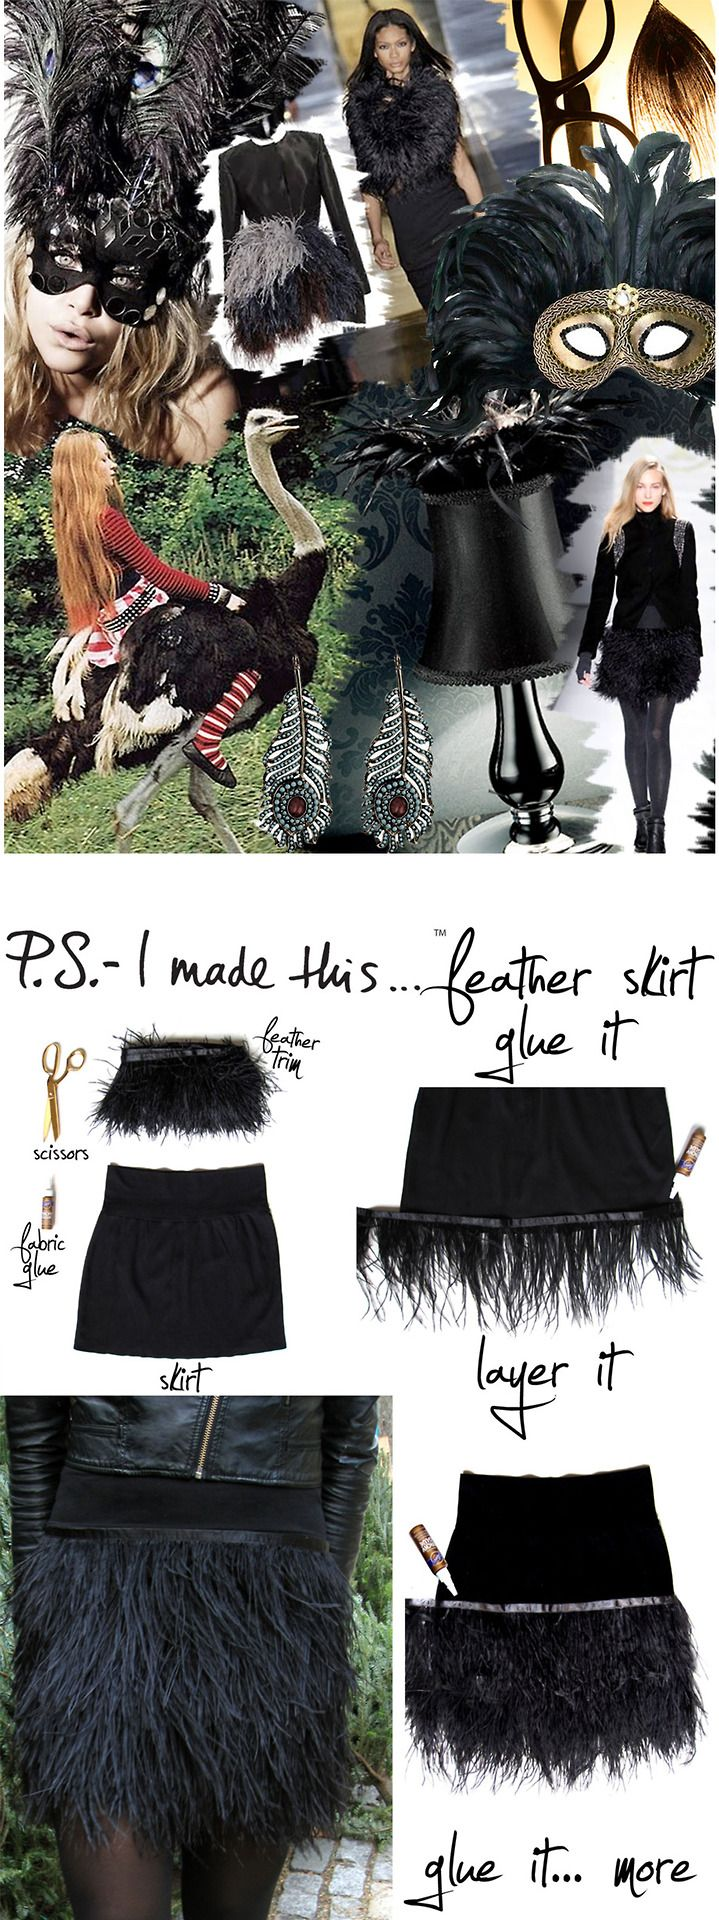 Birds of a feather flock together! I teamed up with Who What Wear for a DIY that I'm DIY-ing over. This season were seeing flirty an...